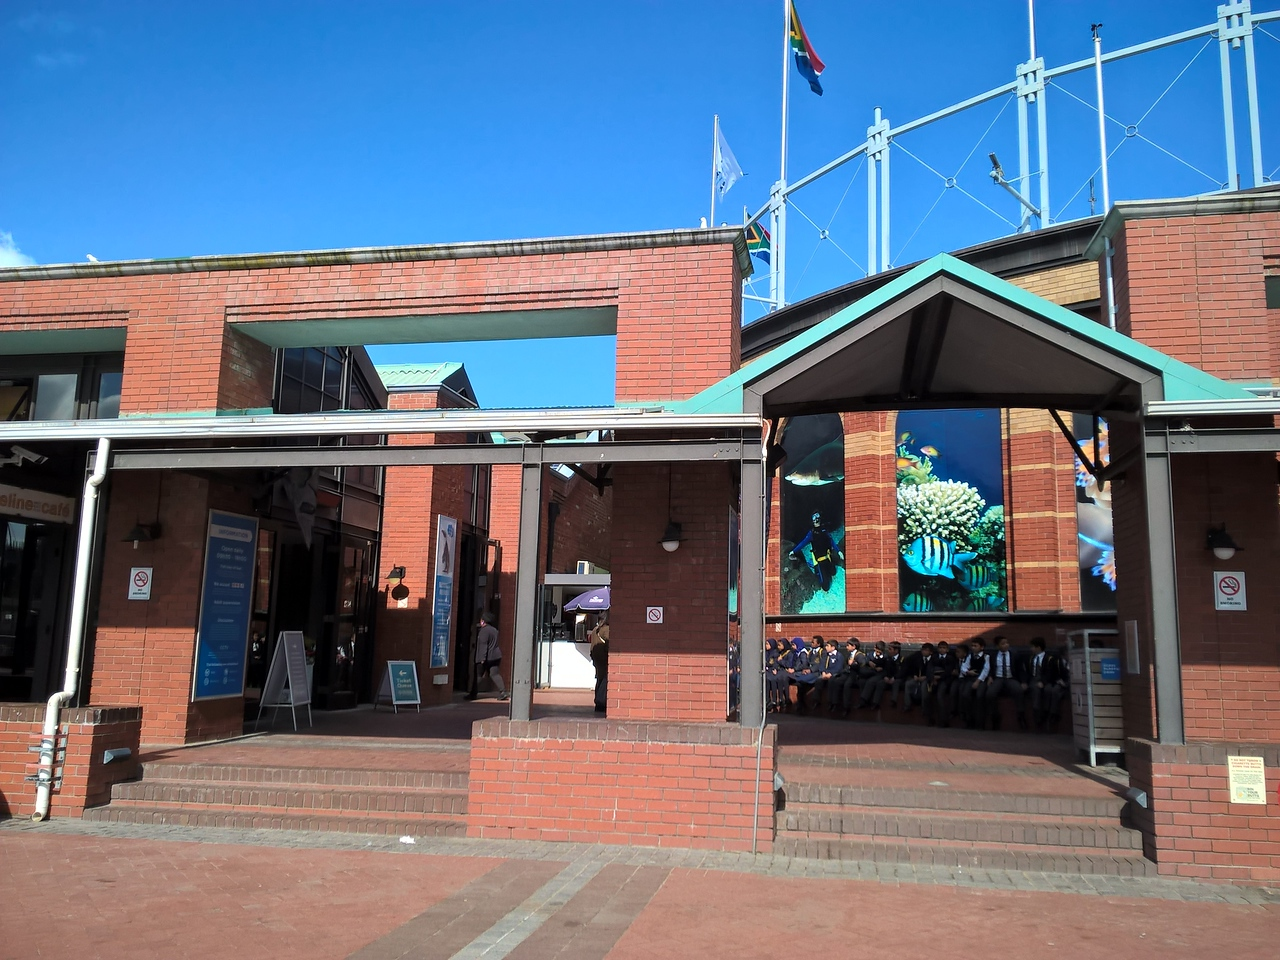 Since evryone on the trip was an Aquarium staff or volunteer, we, of course, visited the Cape Town Aquarium!